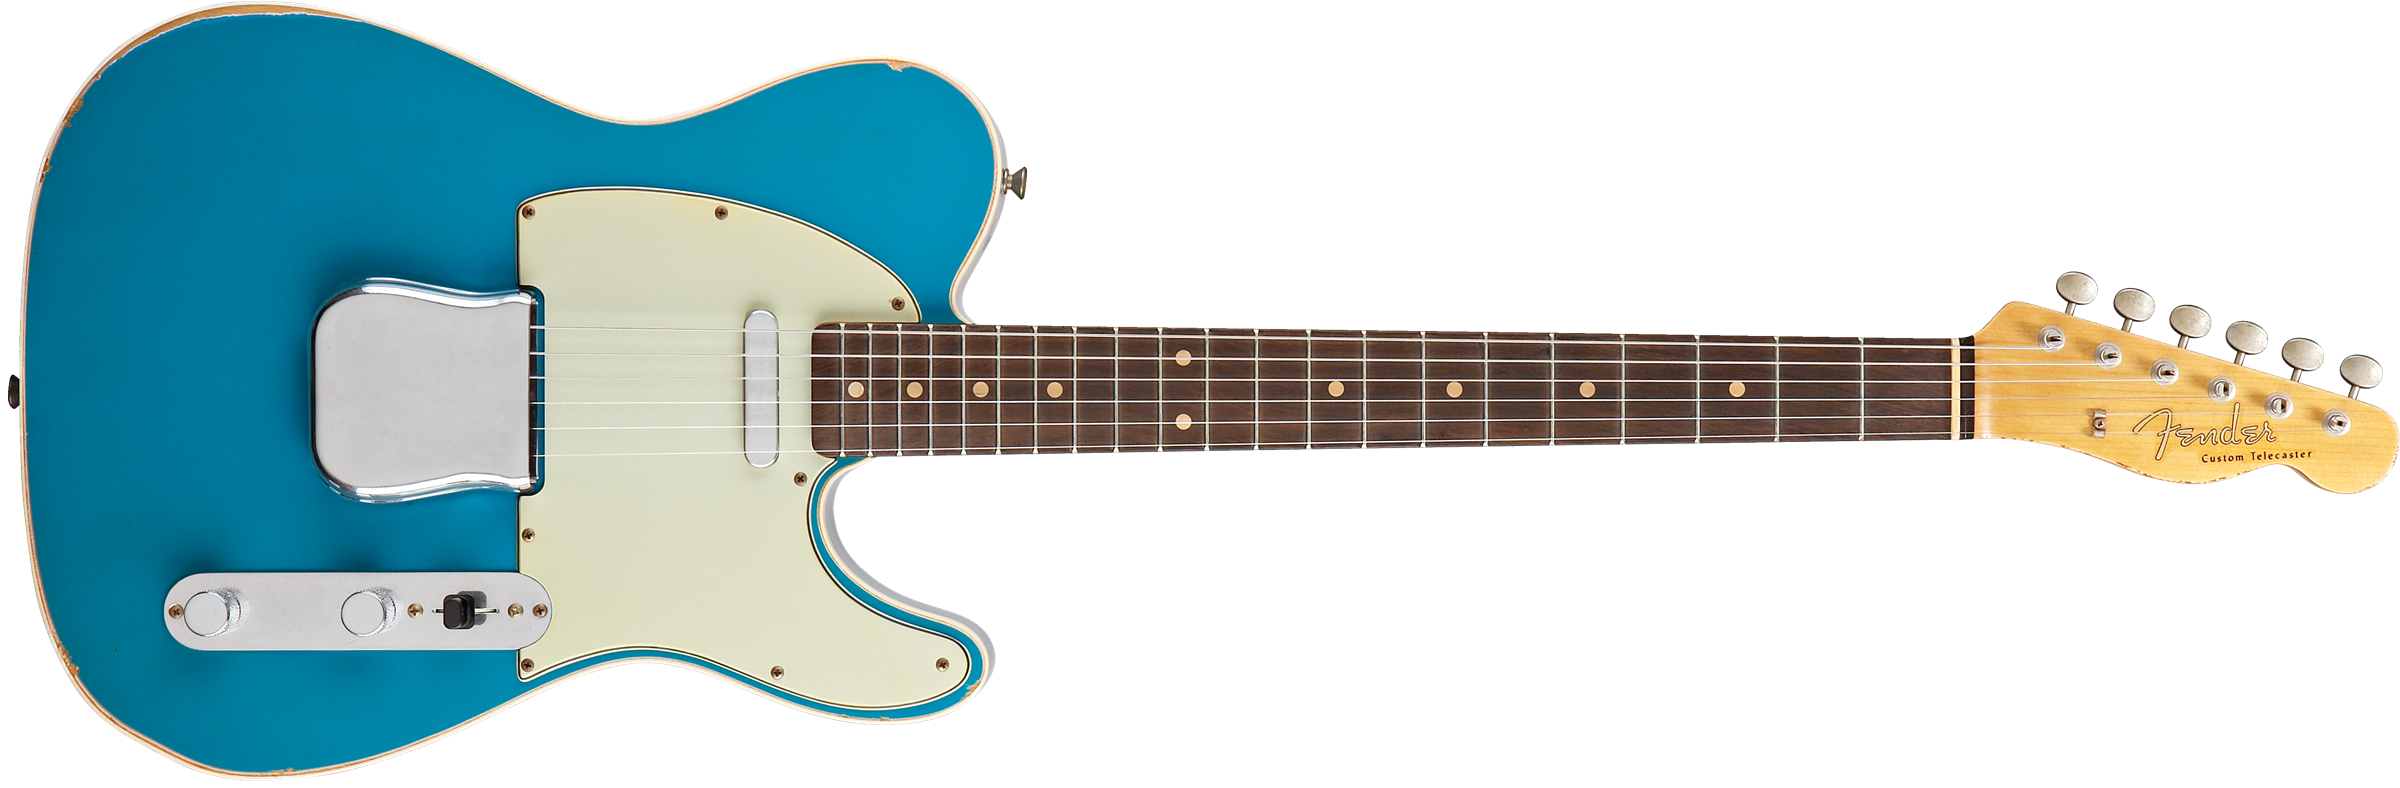 Limited Wildwood 10 1959 Relic Telecaster Custom Faded Strat Master Tone Fender Stratocaster Guitar Forum Hover To Zoom